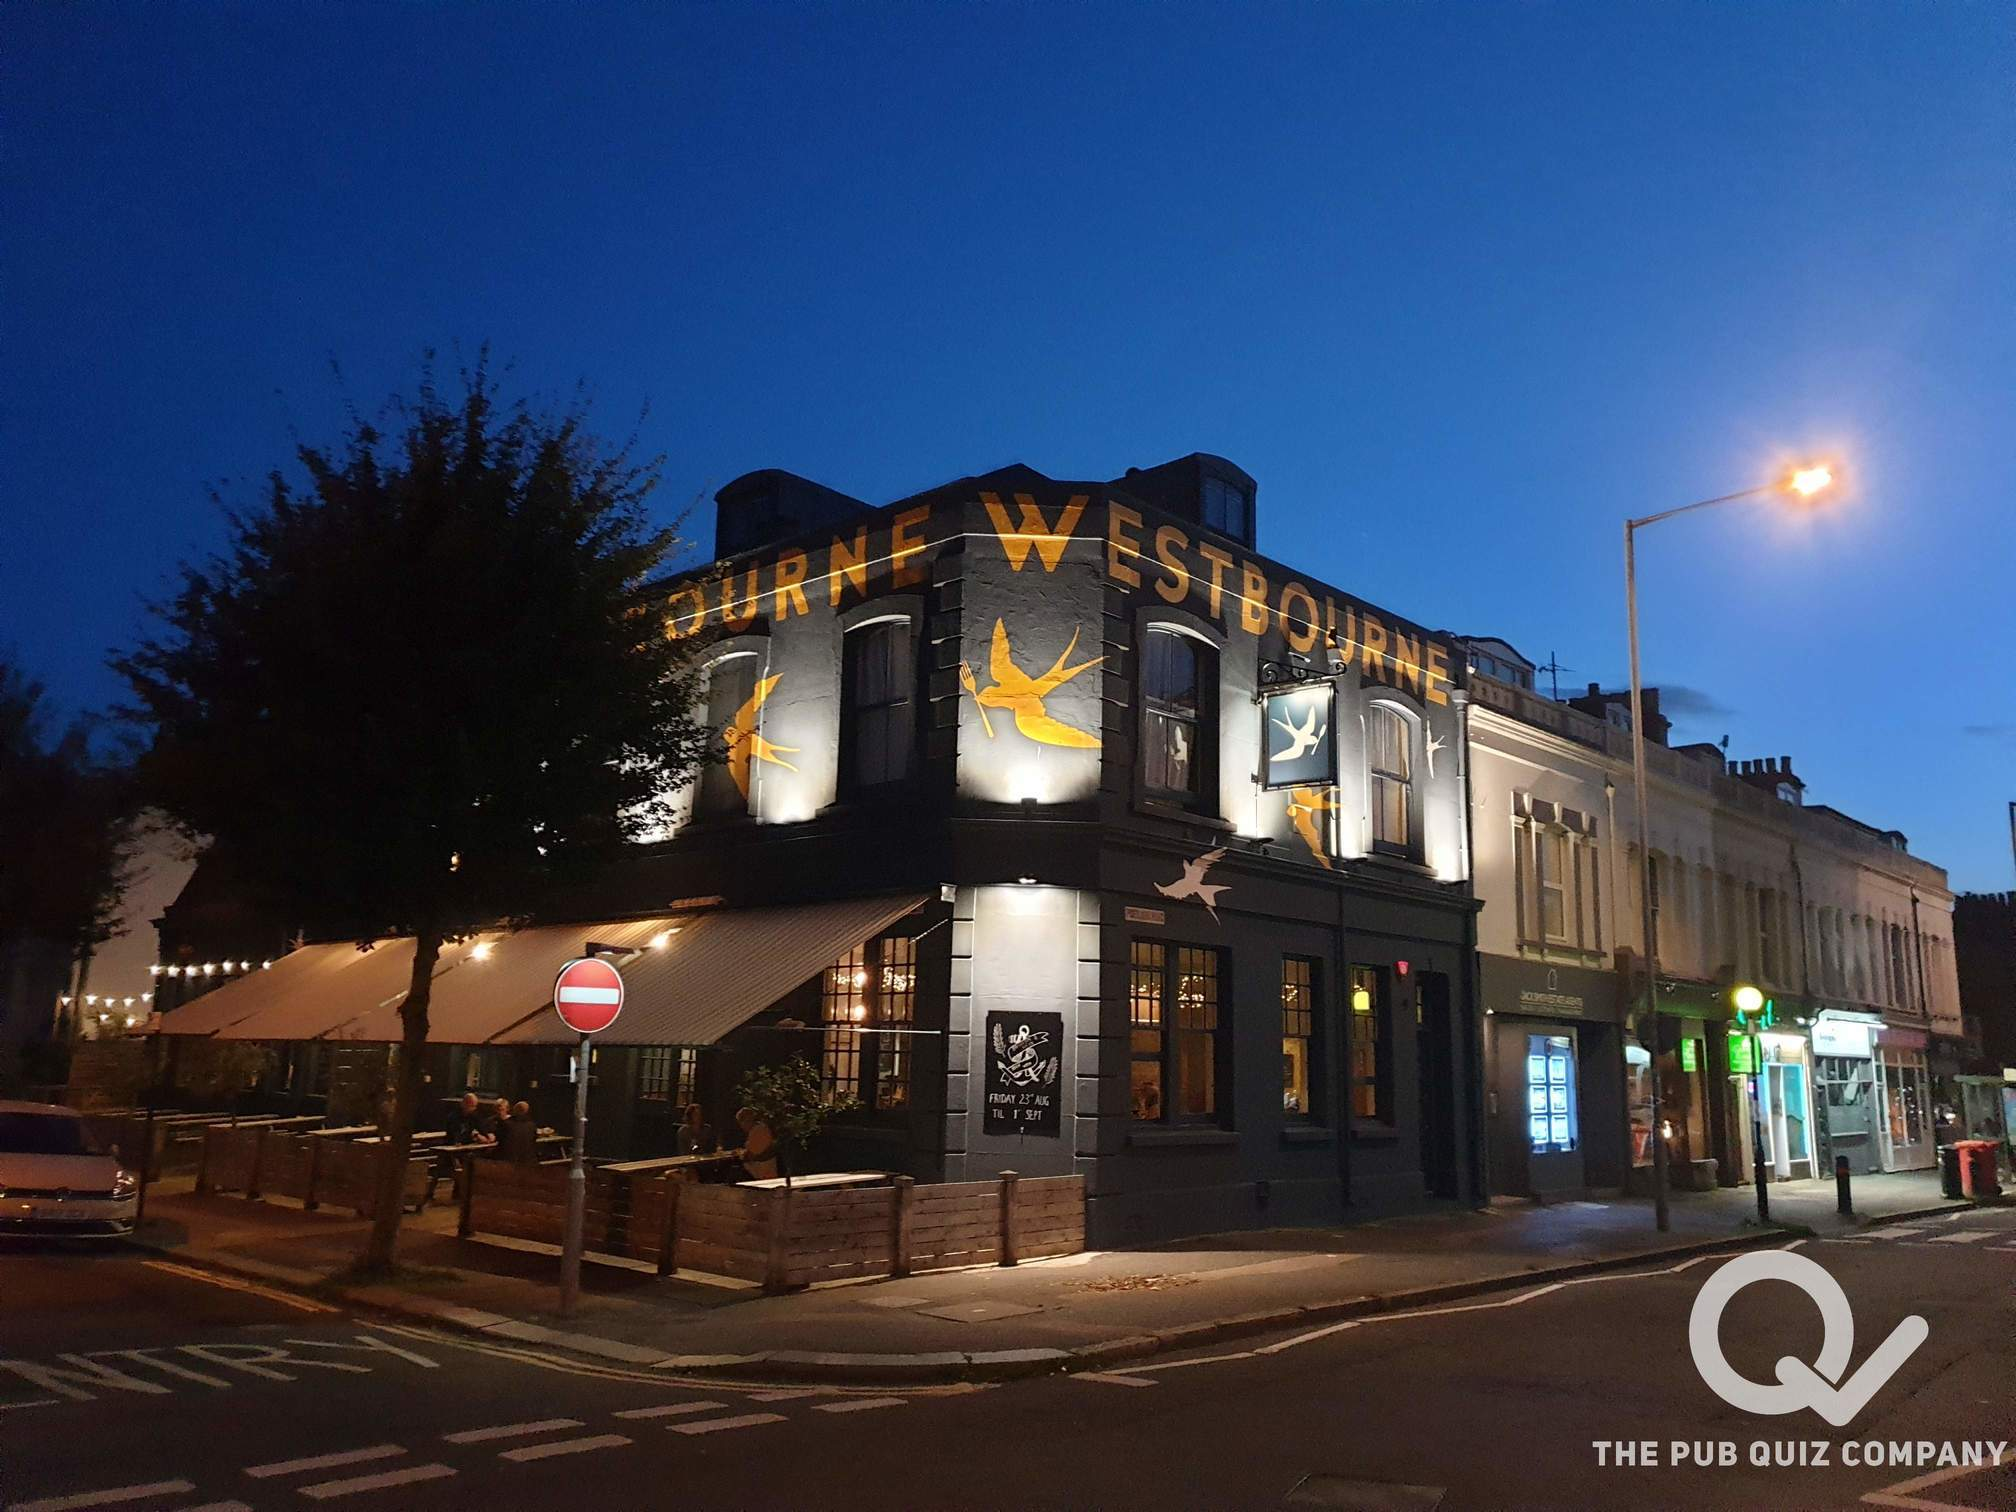 The Westbourne - Tuesday 20th August 2019